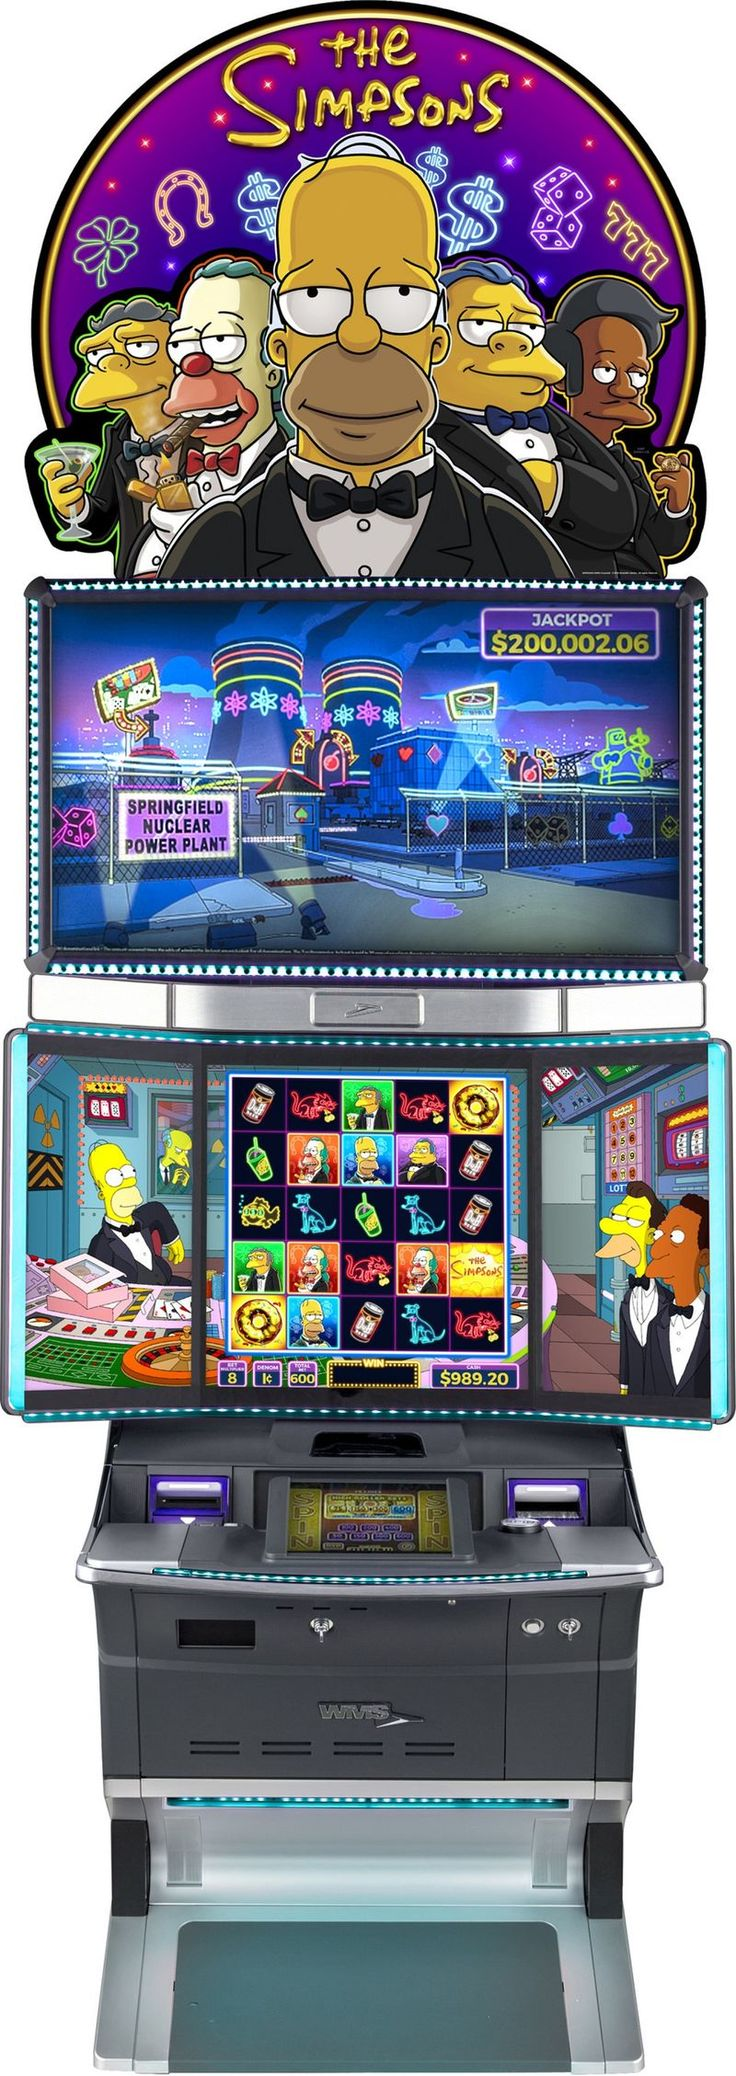 """THE SIMPSONS game release is a smart slot machine inspired by the famed cartoon franchise. Referencing everything from a """"Donut Wheel Bonus, Moe's Pranks A Lot, Apu's Scrat-Cha-Pa-Looza, and Krusty's It's Cobblering Time"""" levels, this slot machine is geared towards die-hard Simpsons fans seeking a unique form of gaming entertainment. Simpsons game slot machine also boasts an intuitive design that is brought to life with motion sensor technology, which allows players to fully immerse…"""